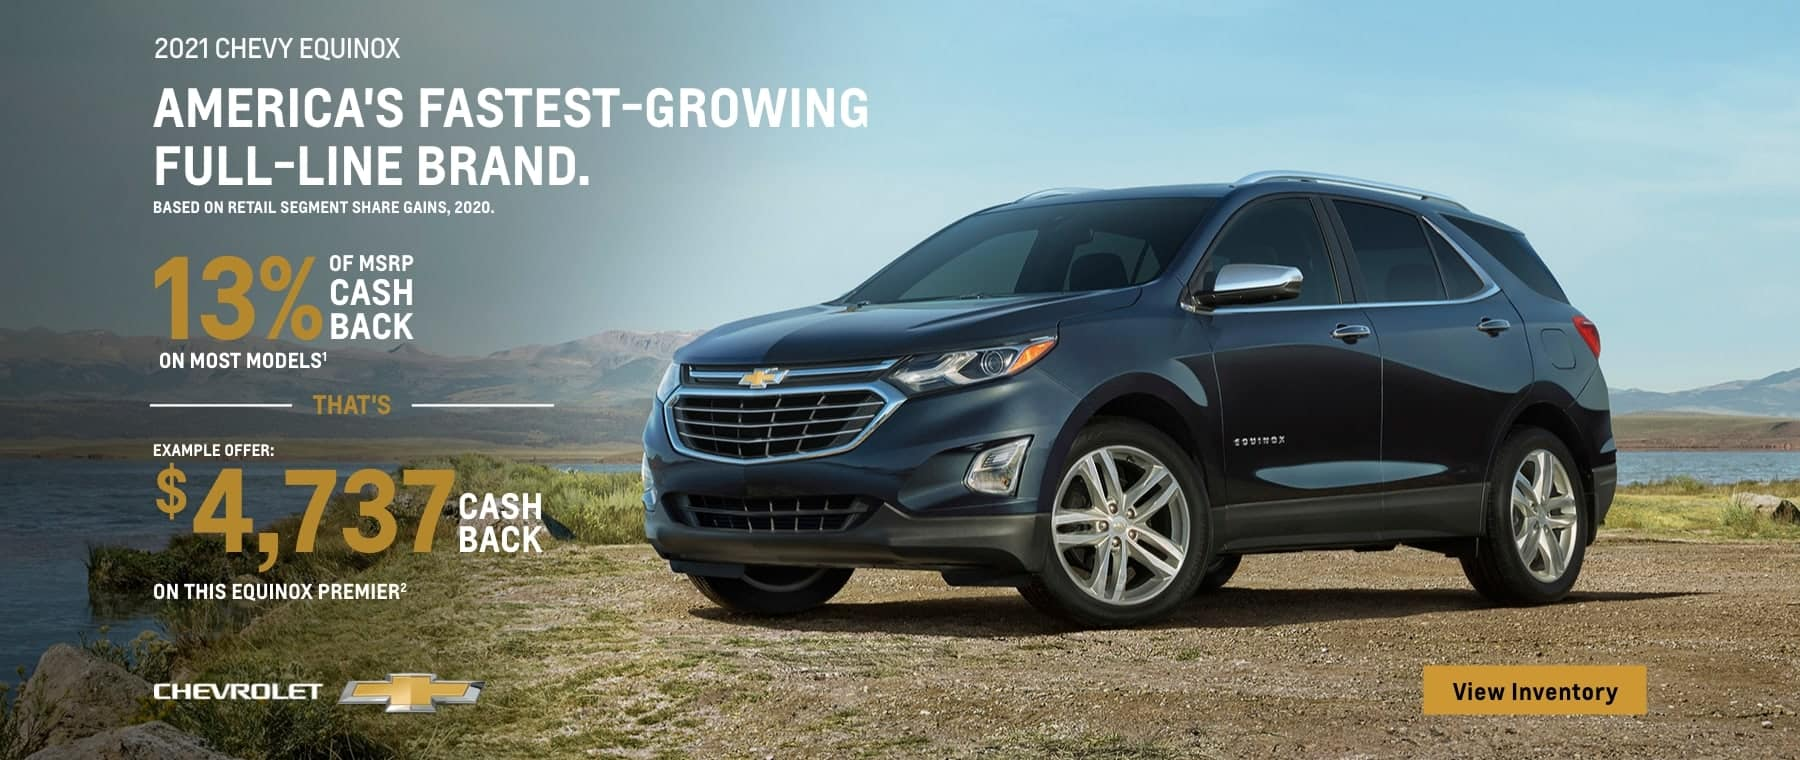 2021 Equinox 13% of MSRP cash back on most models. That's example offer $4,737 cash back on this Equinox Premier.